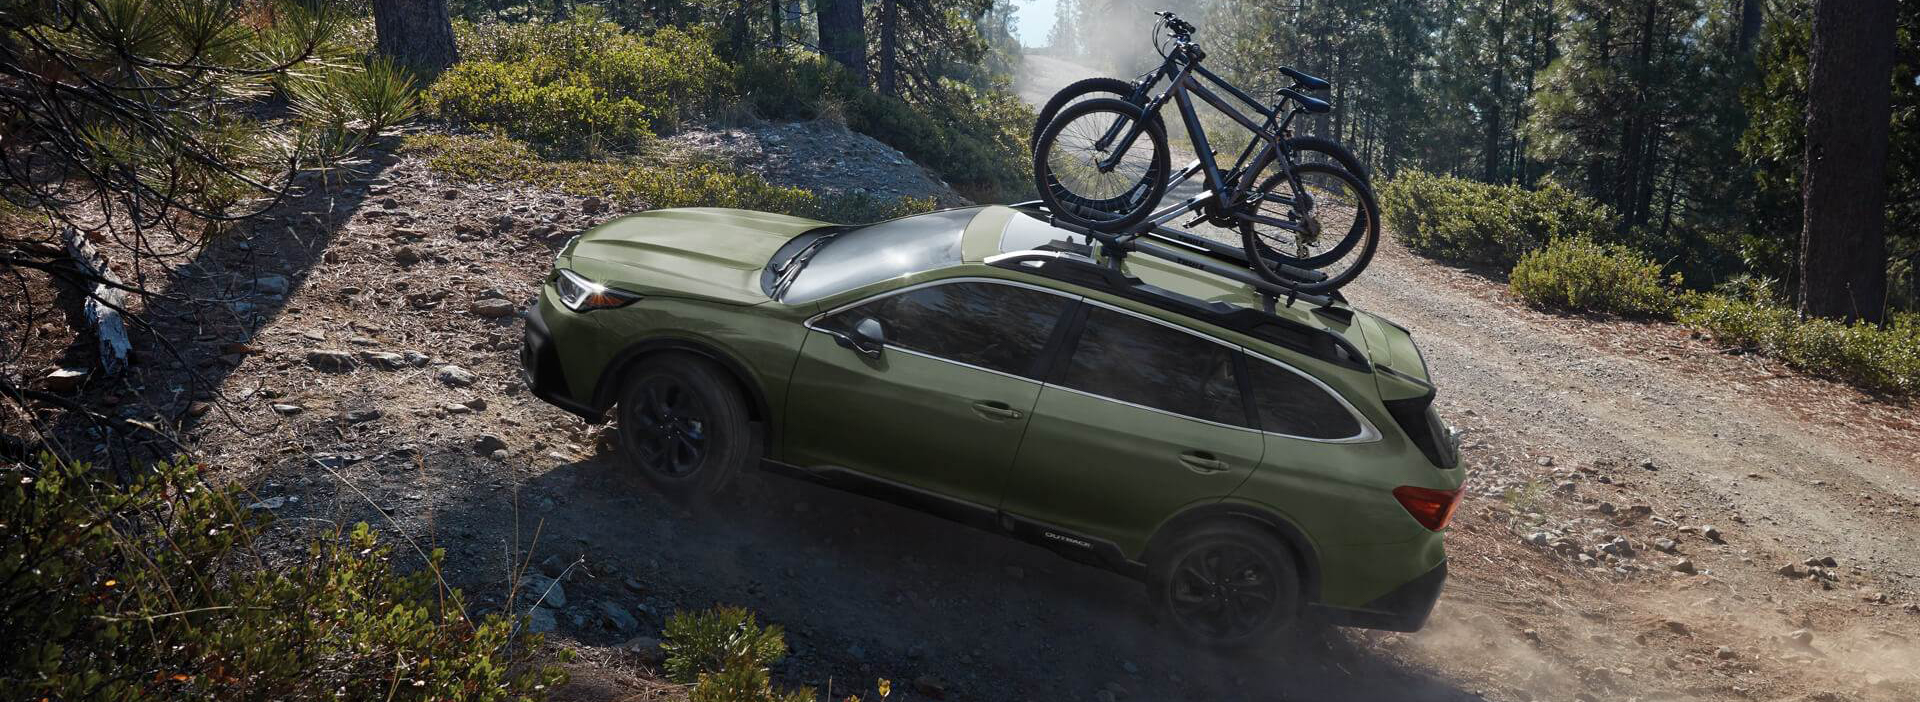 green 2020 subaru outback driving on a dirtpath with bikes on a bike rack